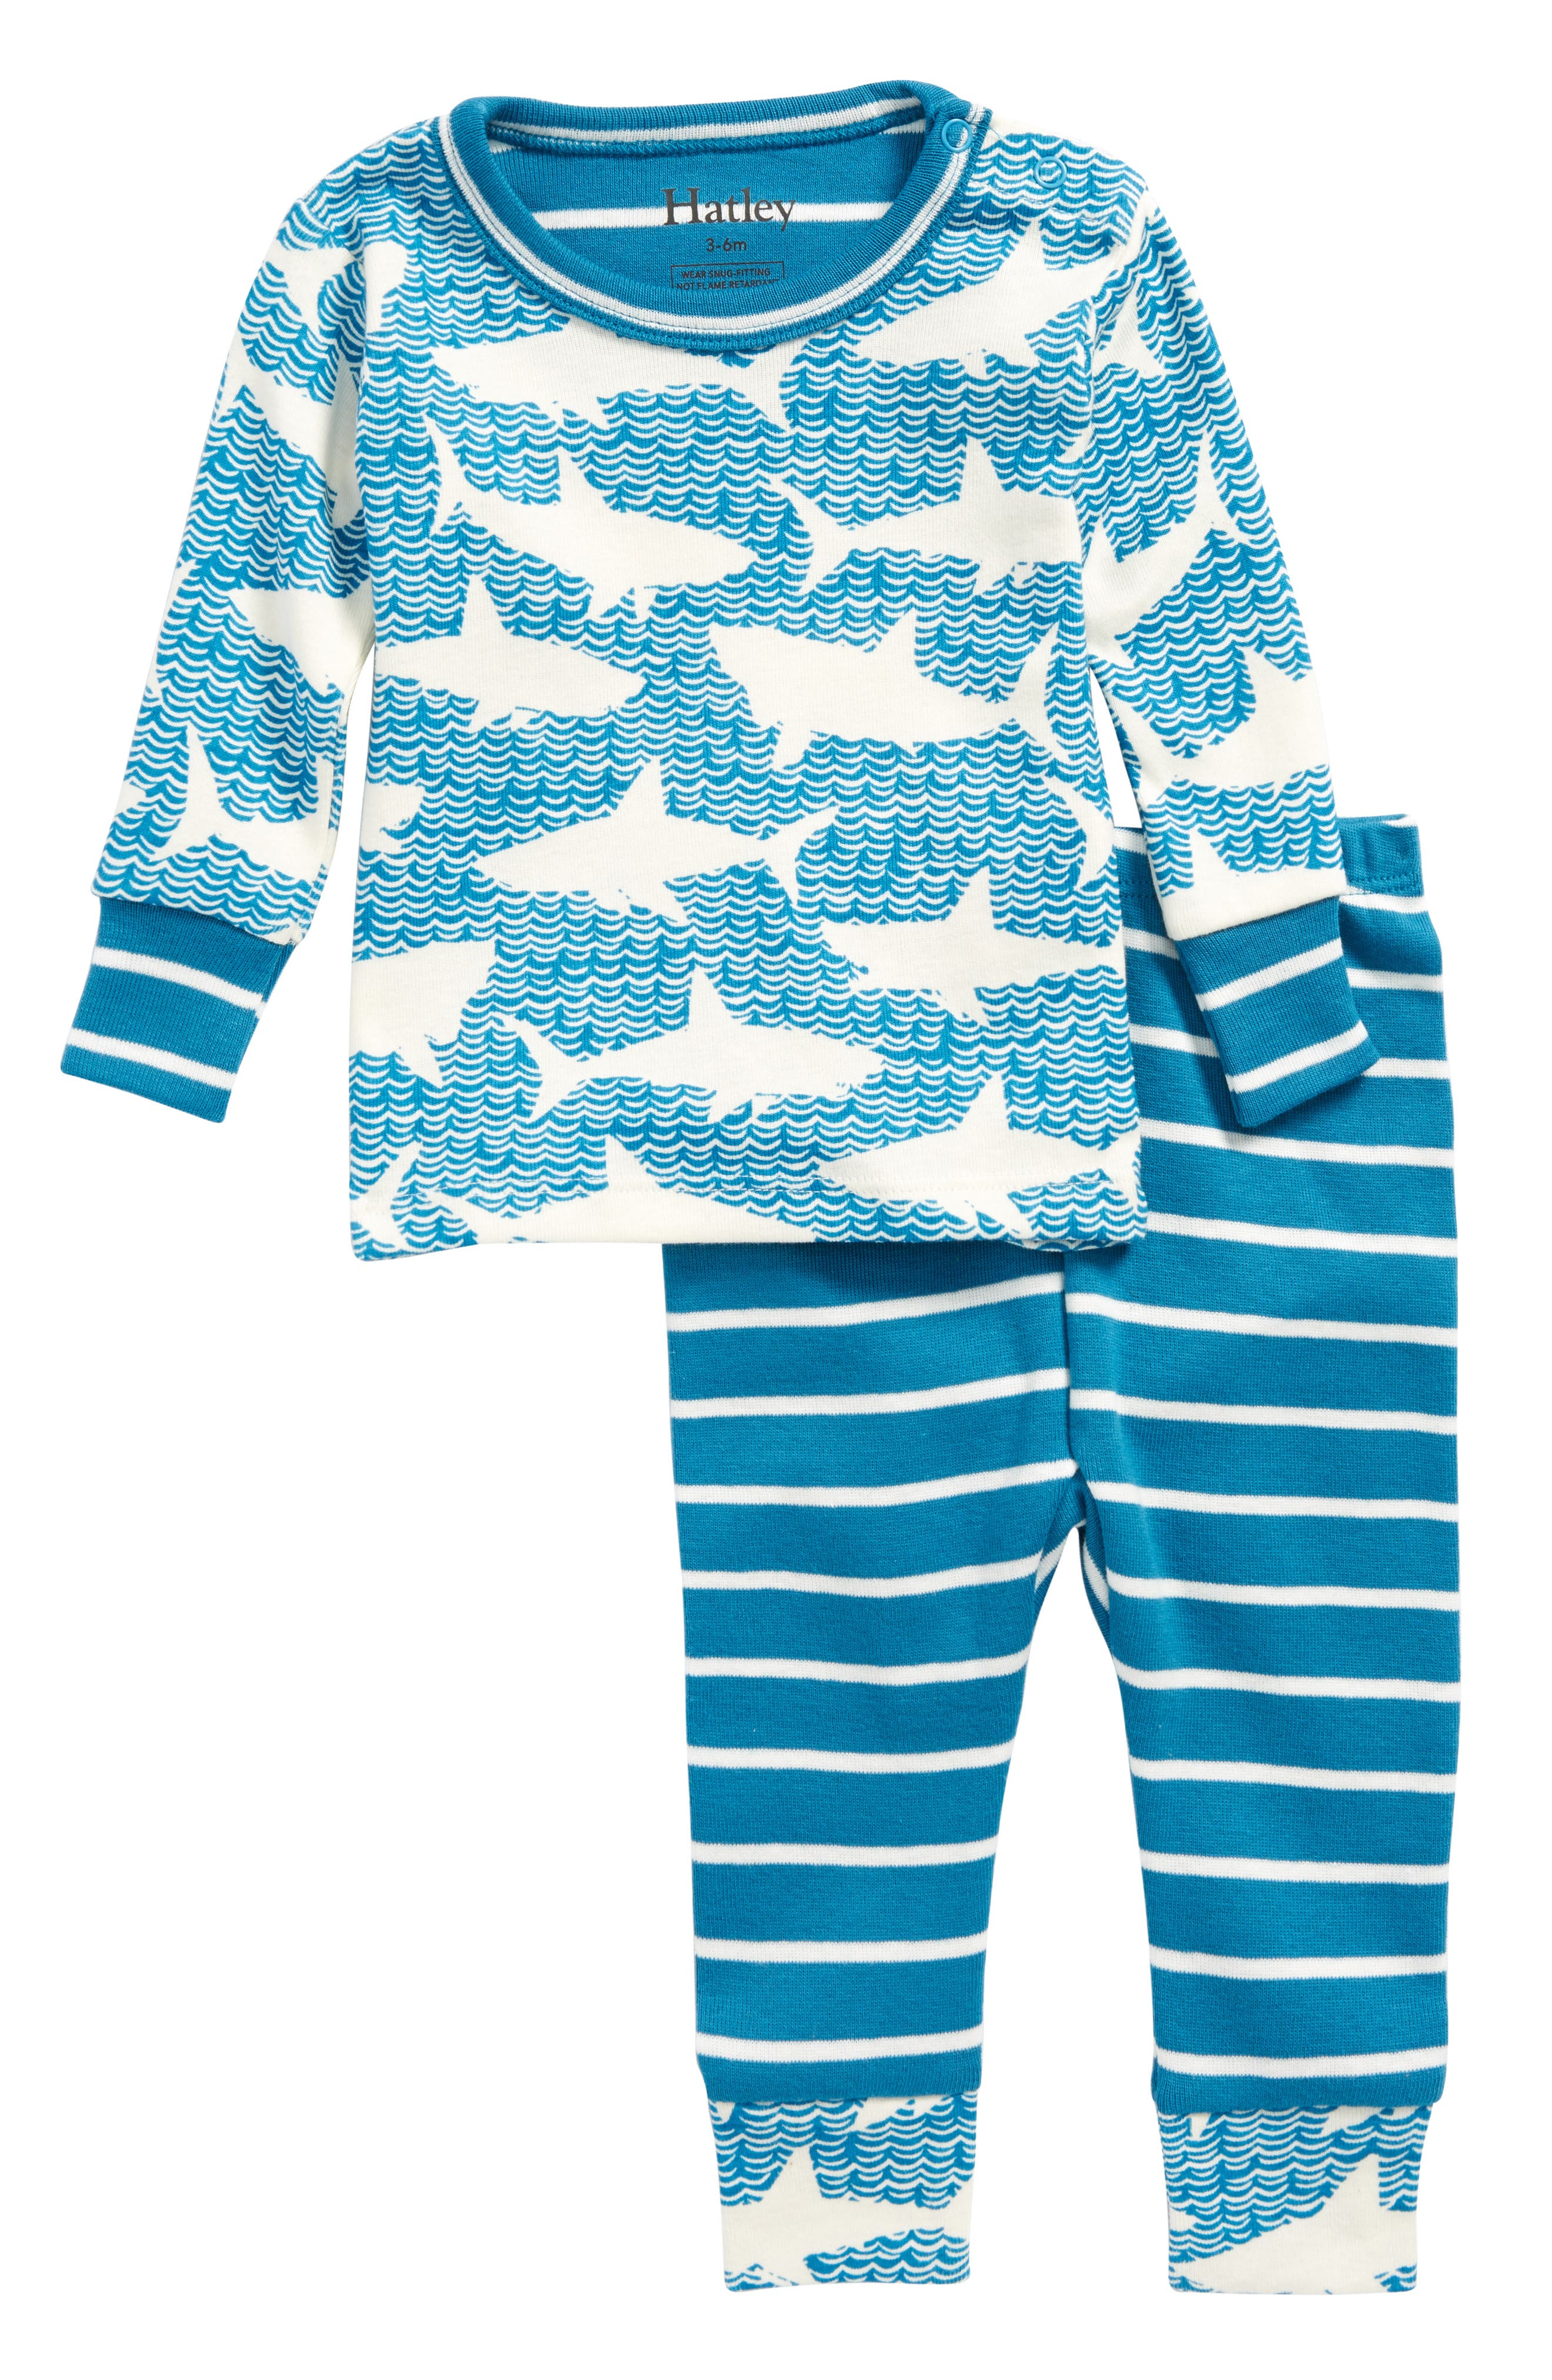 Shark Alley Organic Cotton Fitted Two-Piece Pajamas,                         Main,                         color,